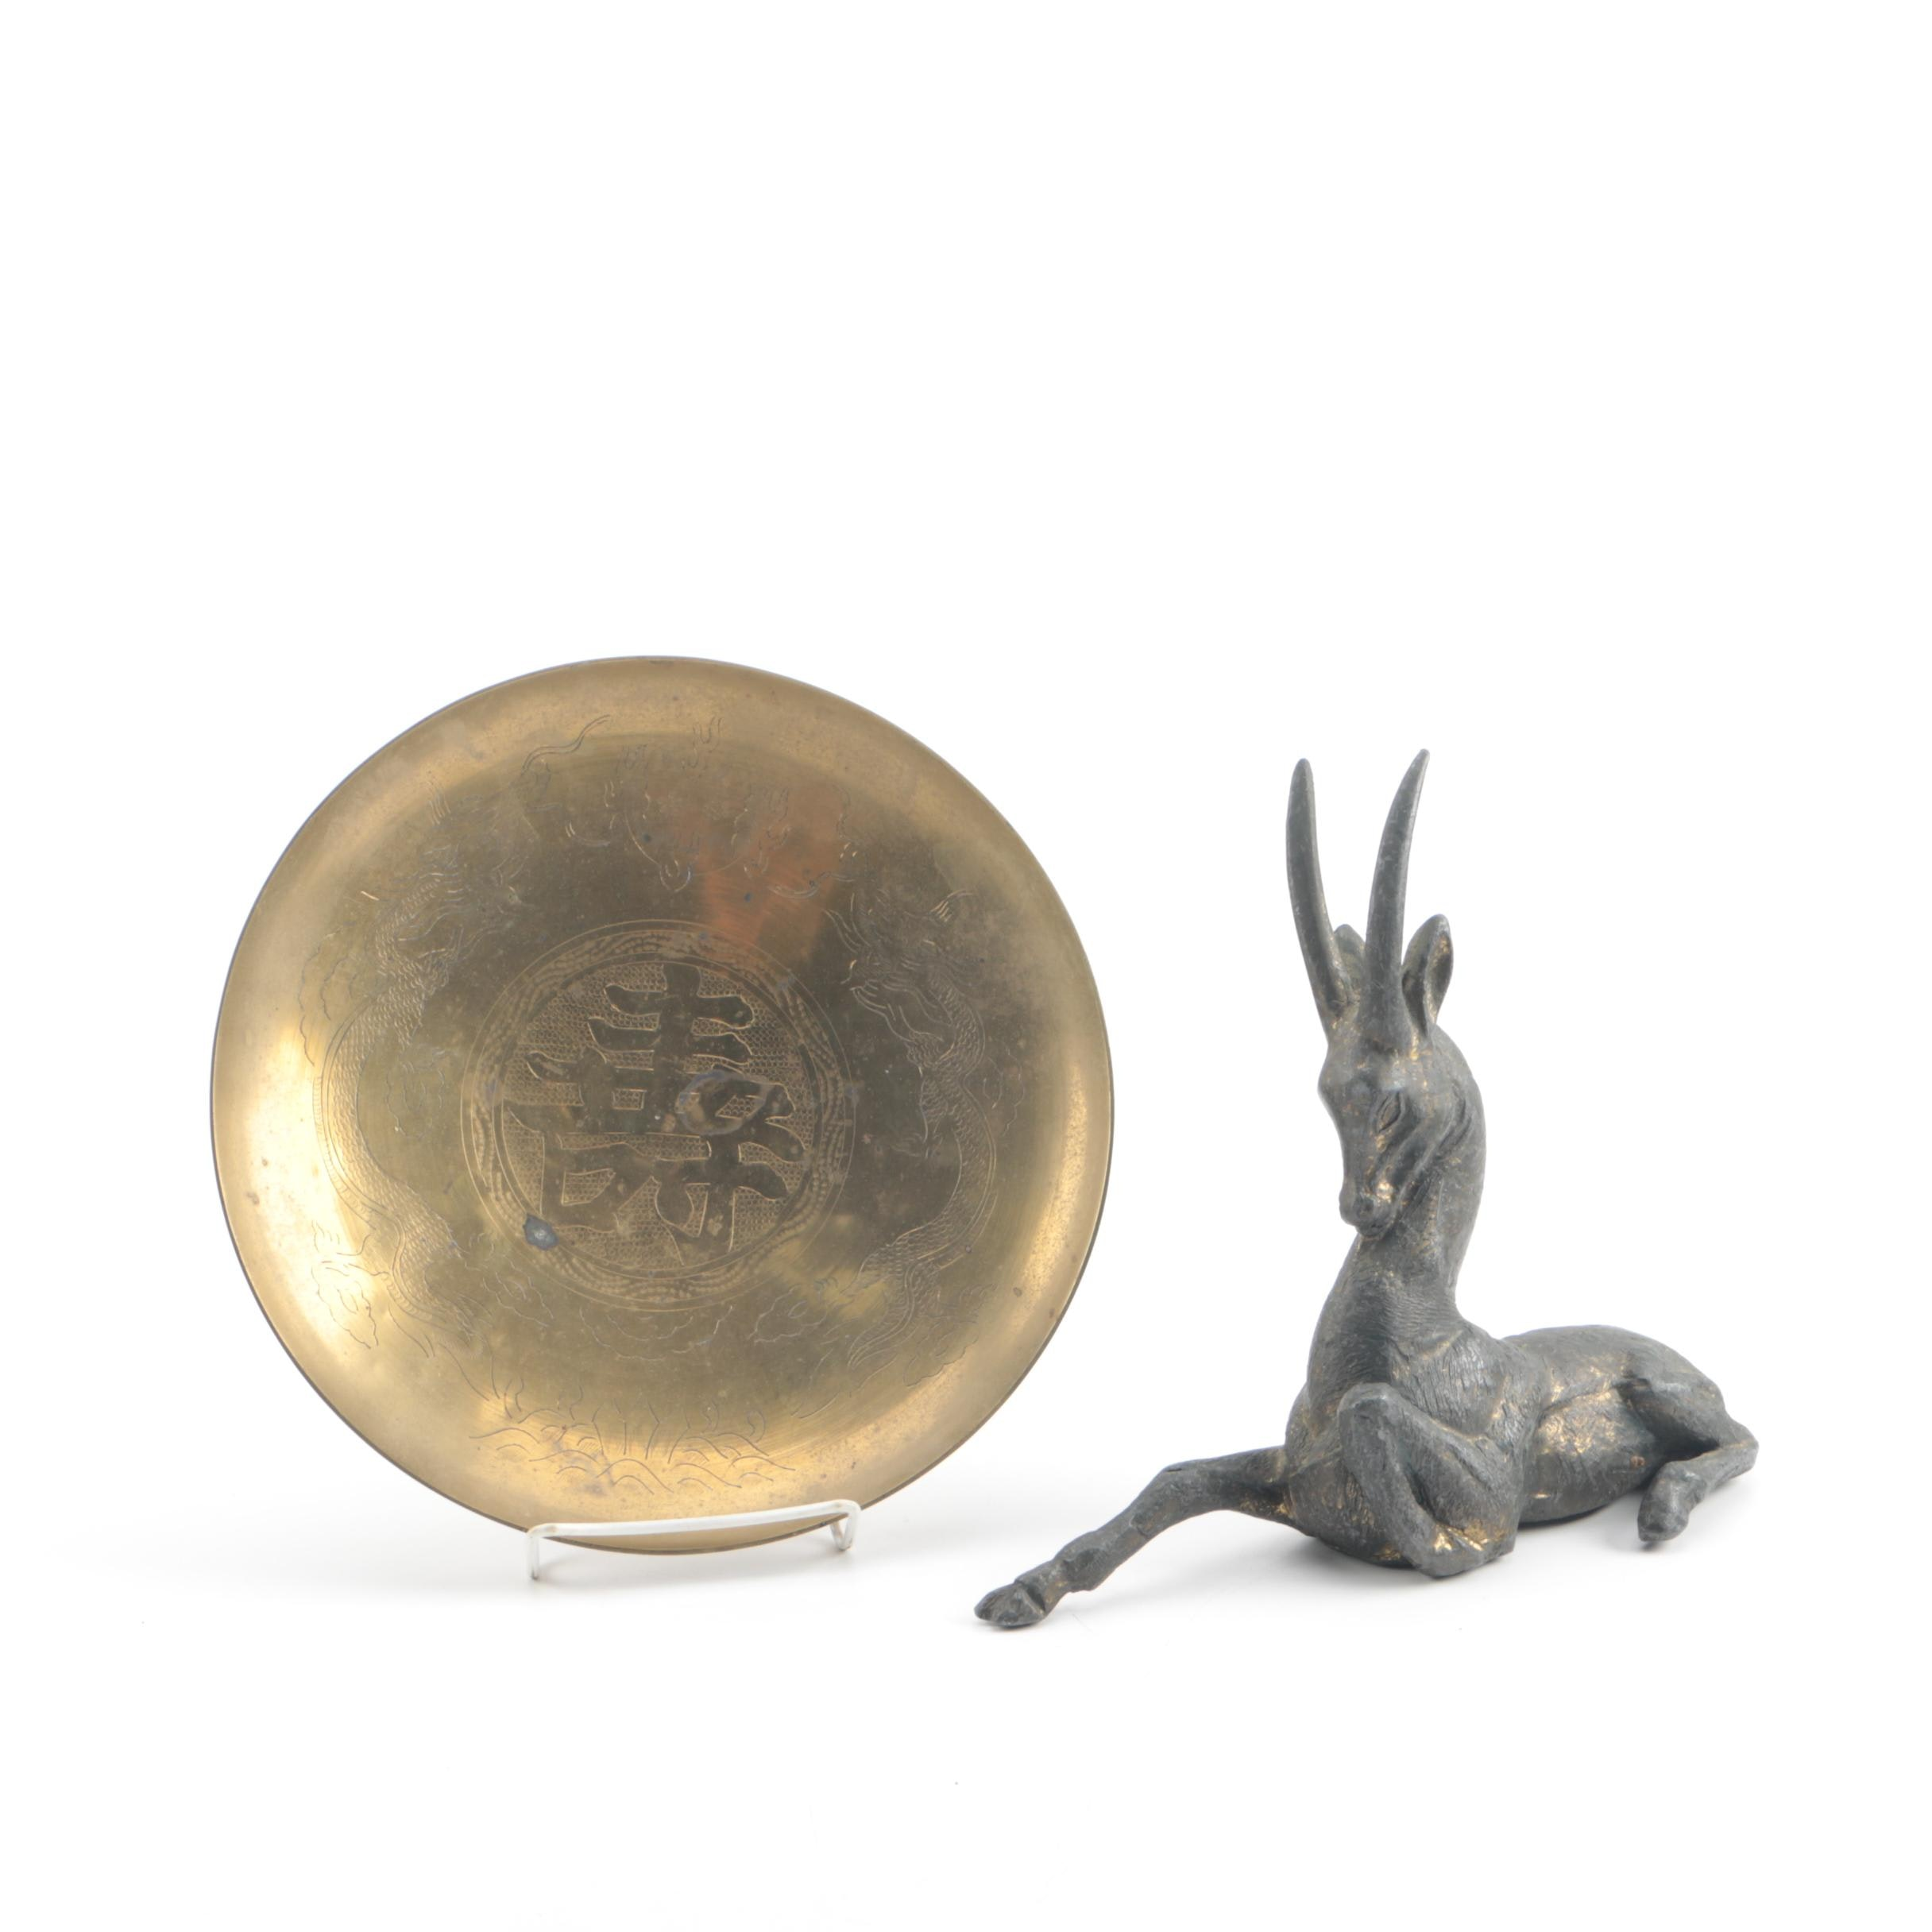 Chinese Brass Bowl with Cast Metal Antelope Figurine